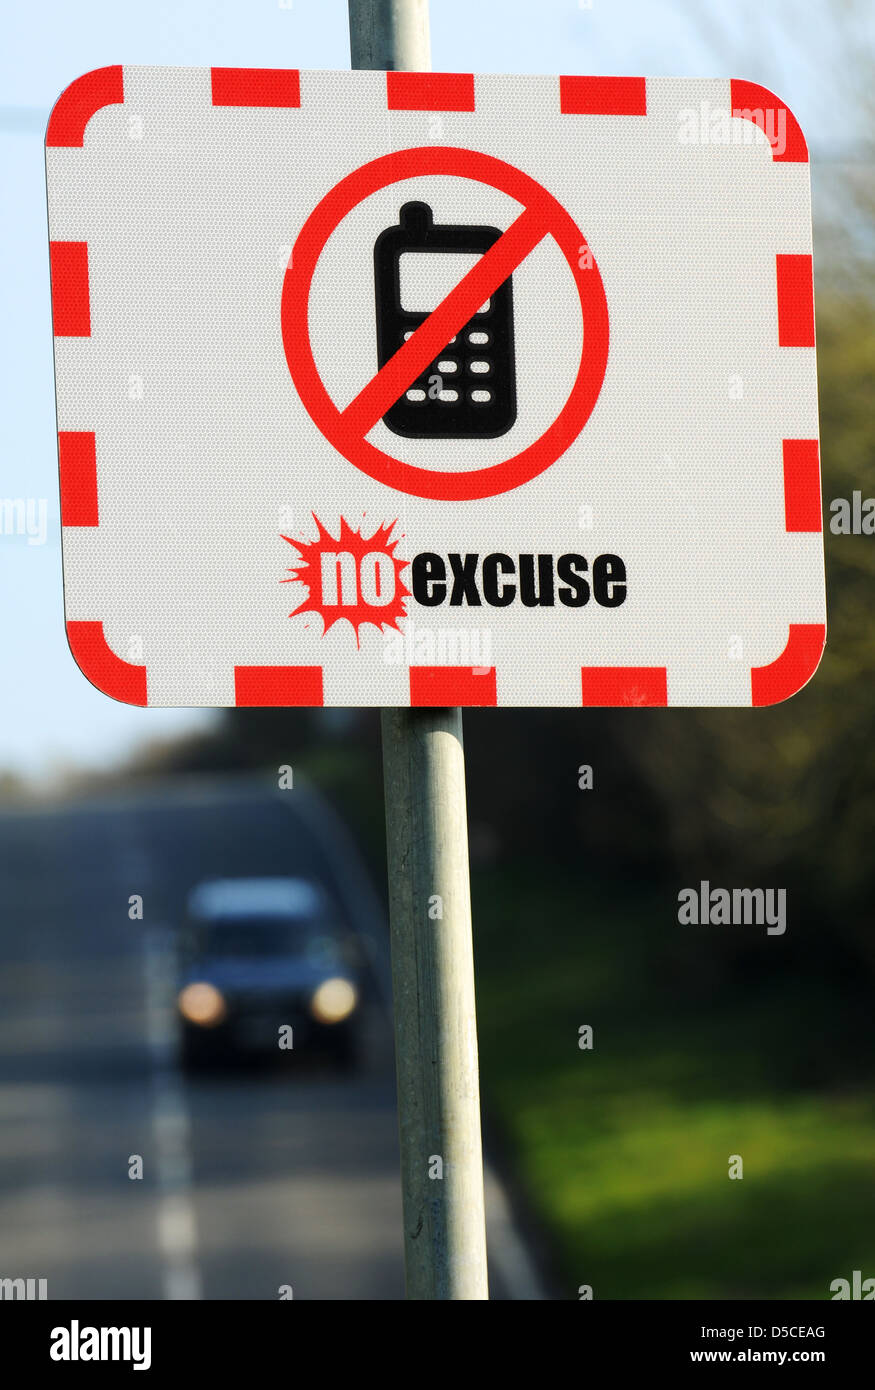 Texting While Driving >> No Excuse Road safety sign, no mobile phone whilst driving sign, UK Stock Photo: 54979080 - Alamy